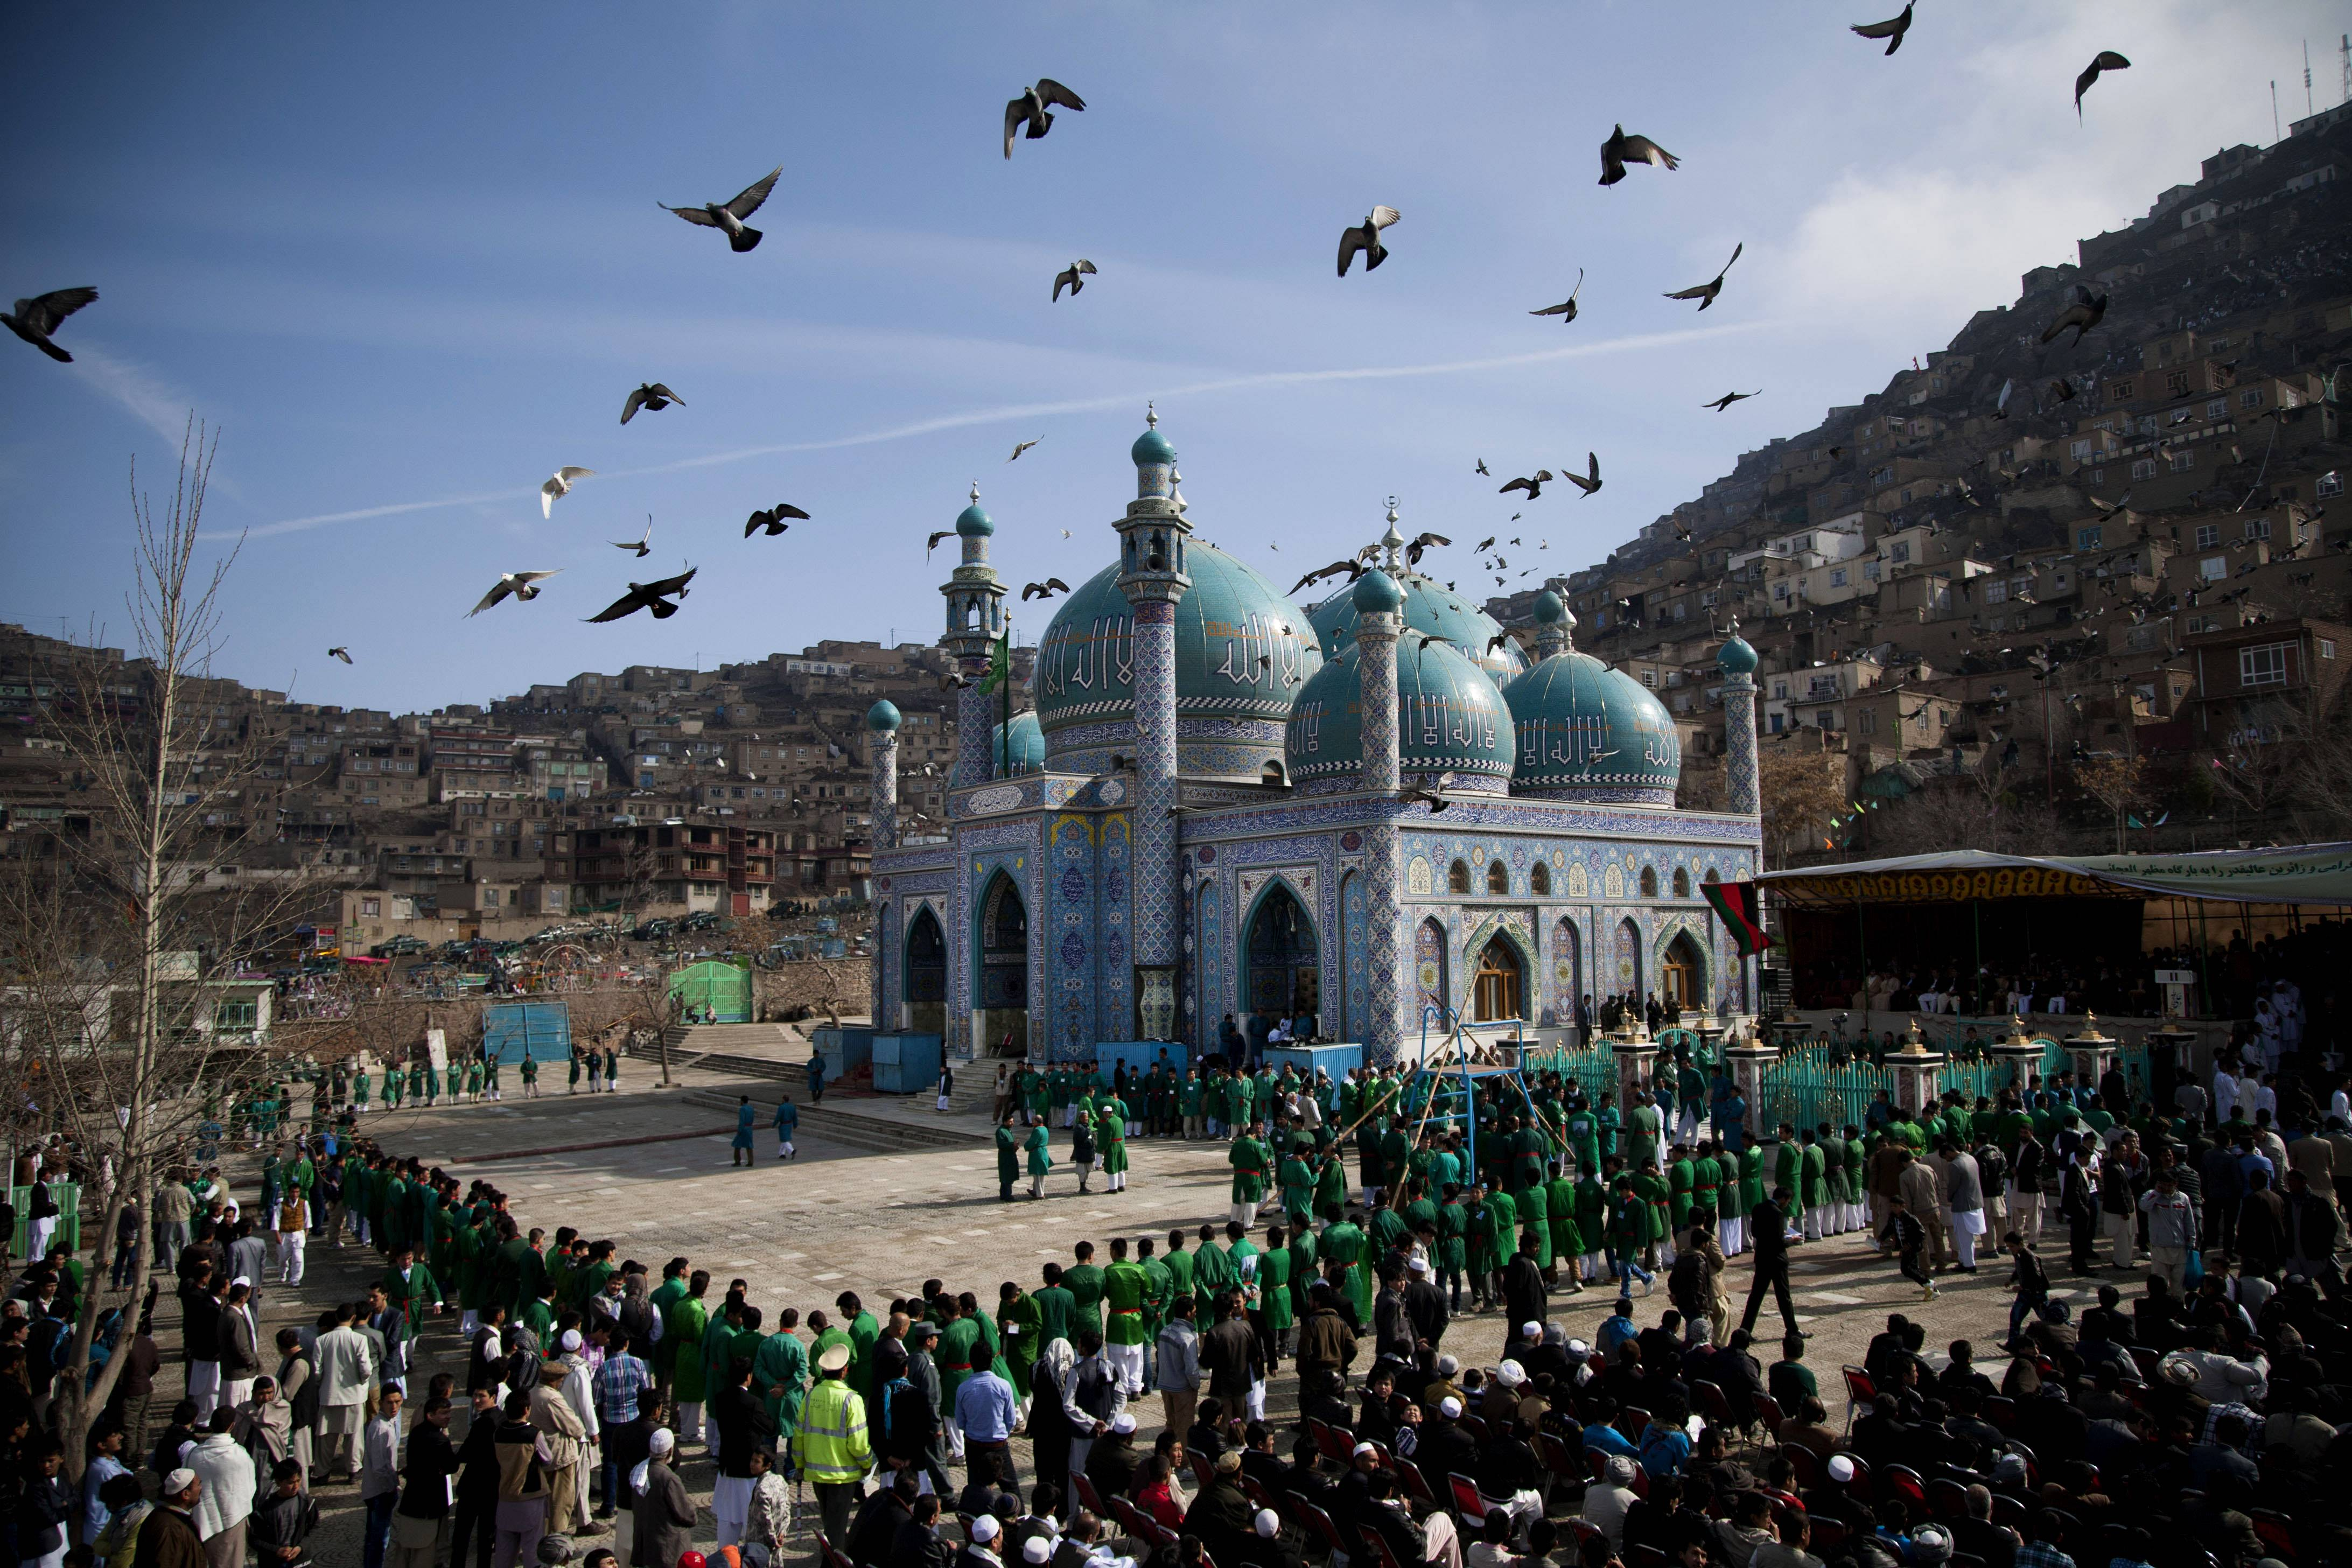 In this Thursday, March 21, 2013 file photo made by Associated Press photographer Anja Niedringhaus, hundreds of Afghans wait to see the holy flag at the Kart-e Sakhi mosque in Kabul, Afghanistan.